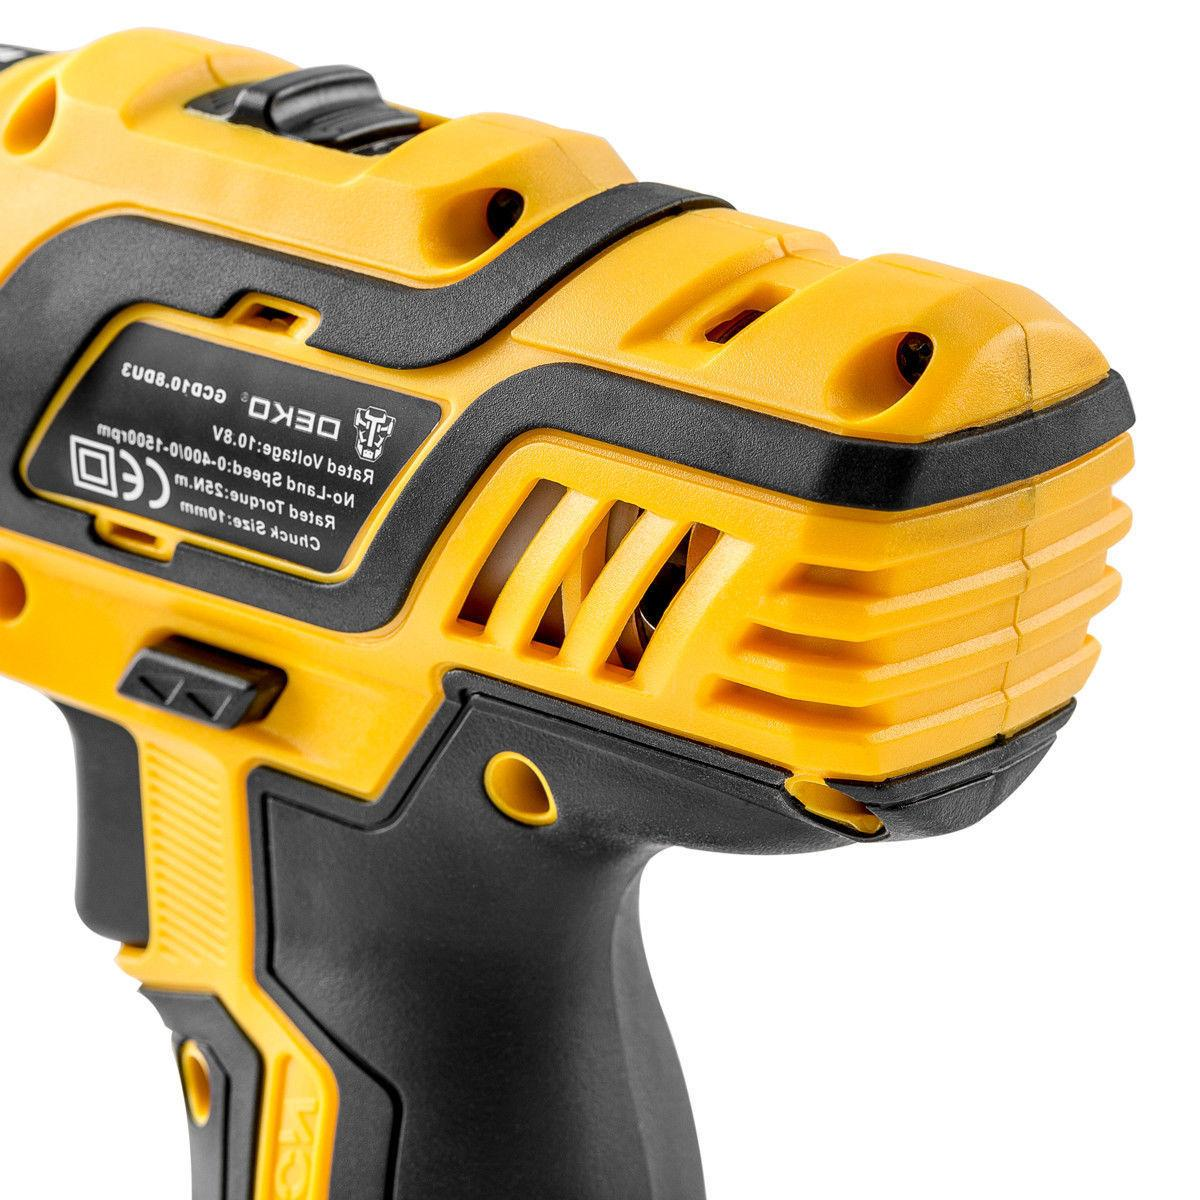 18+1 Driver 12V Lithium-Ion Electric Cordless 2-Speed Drill